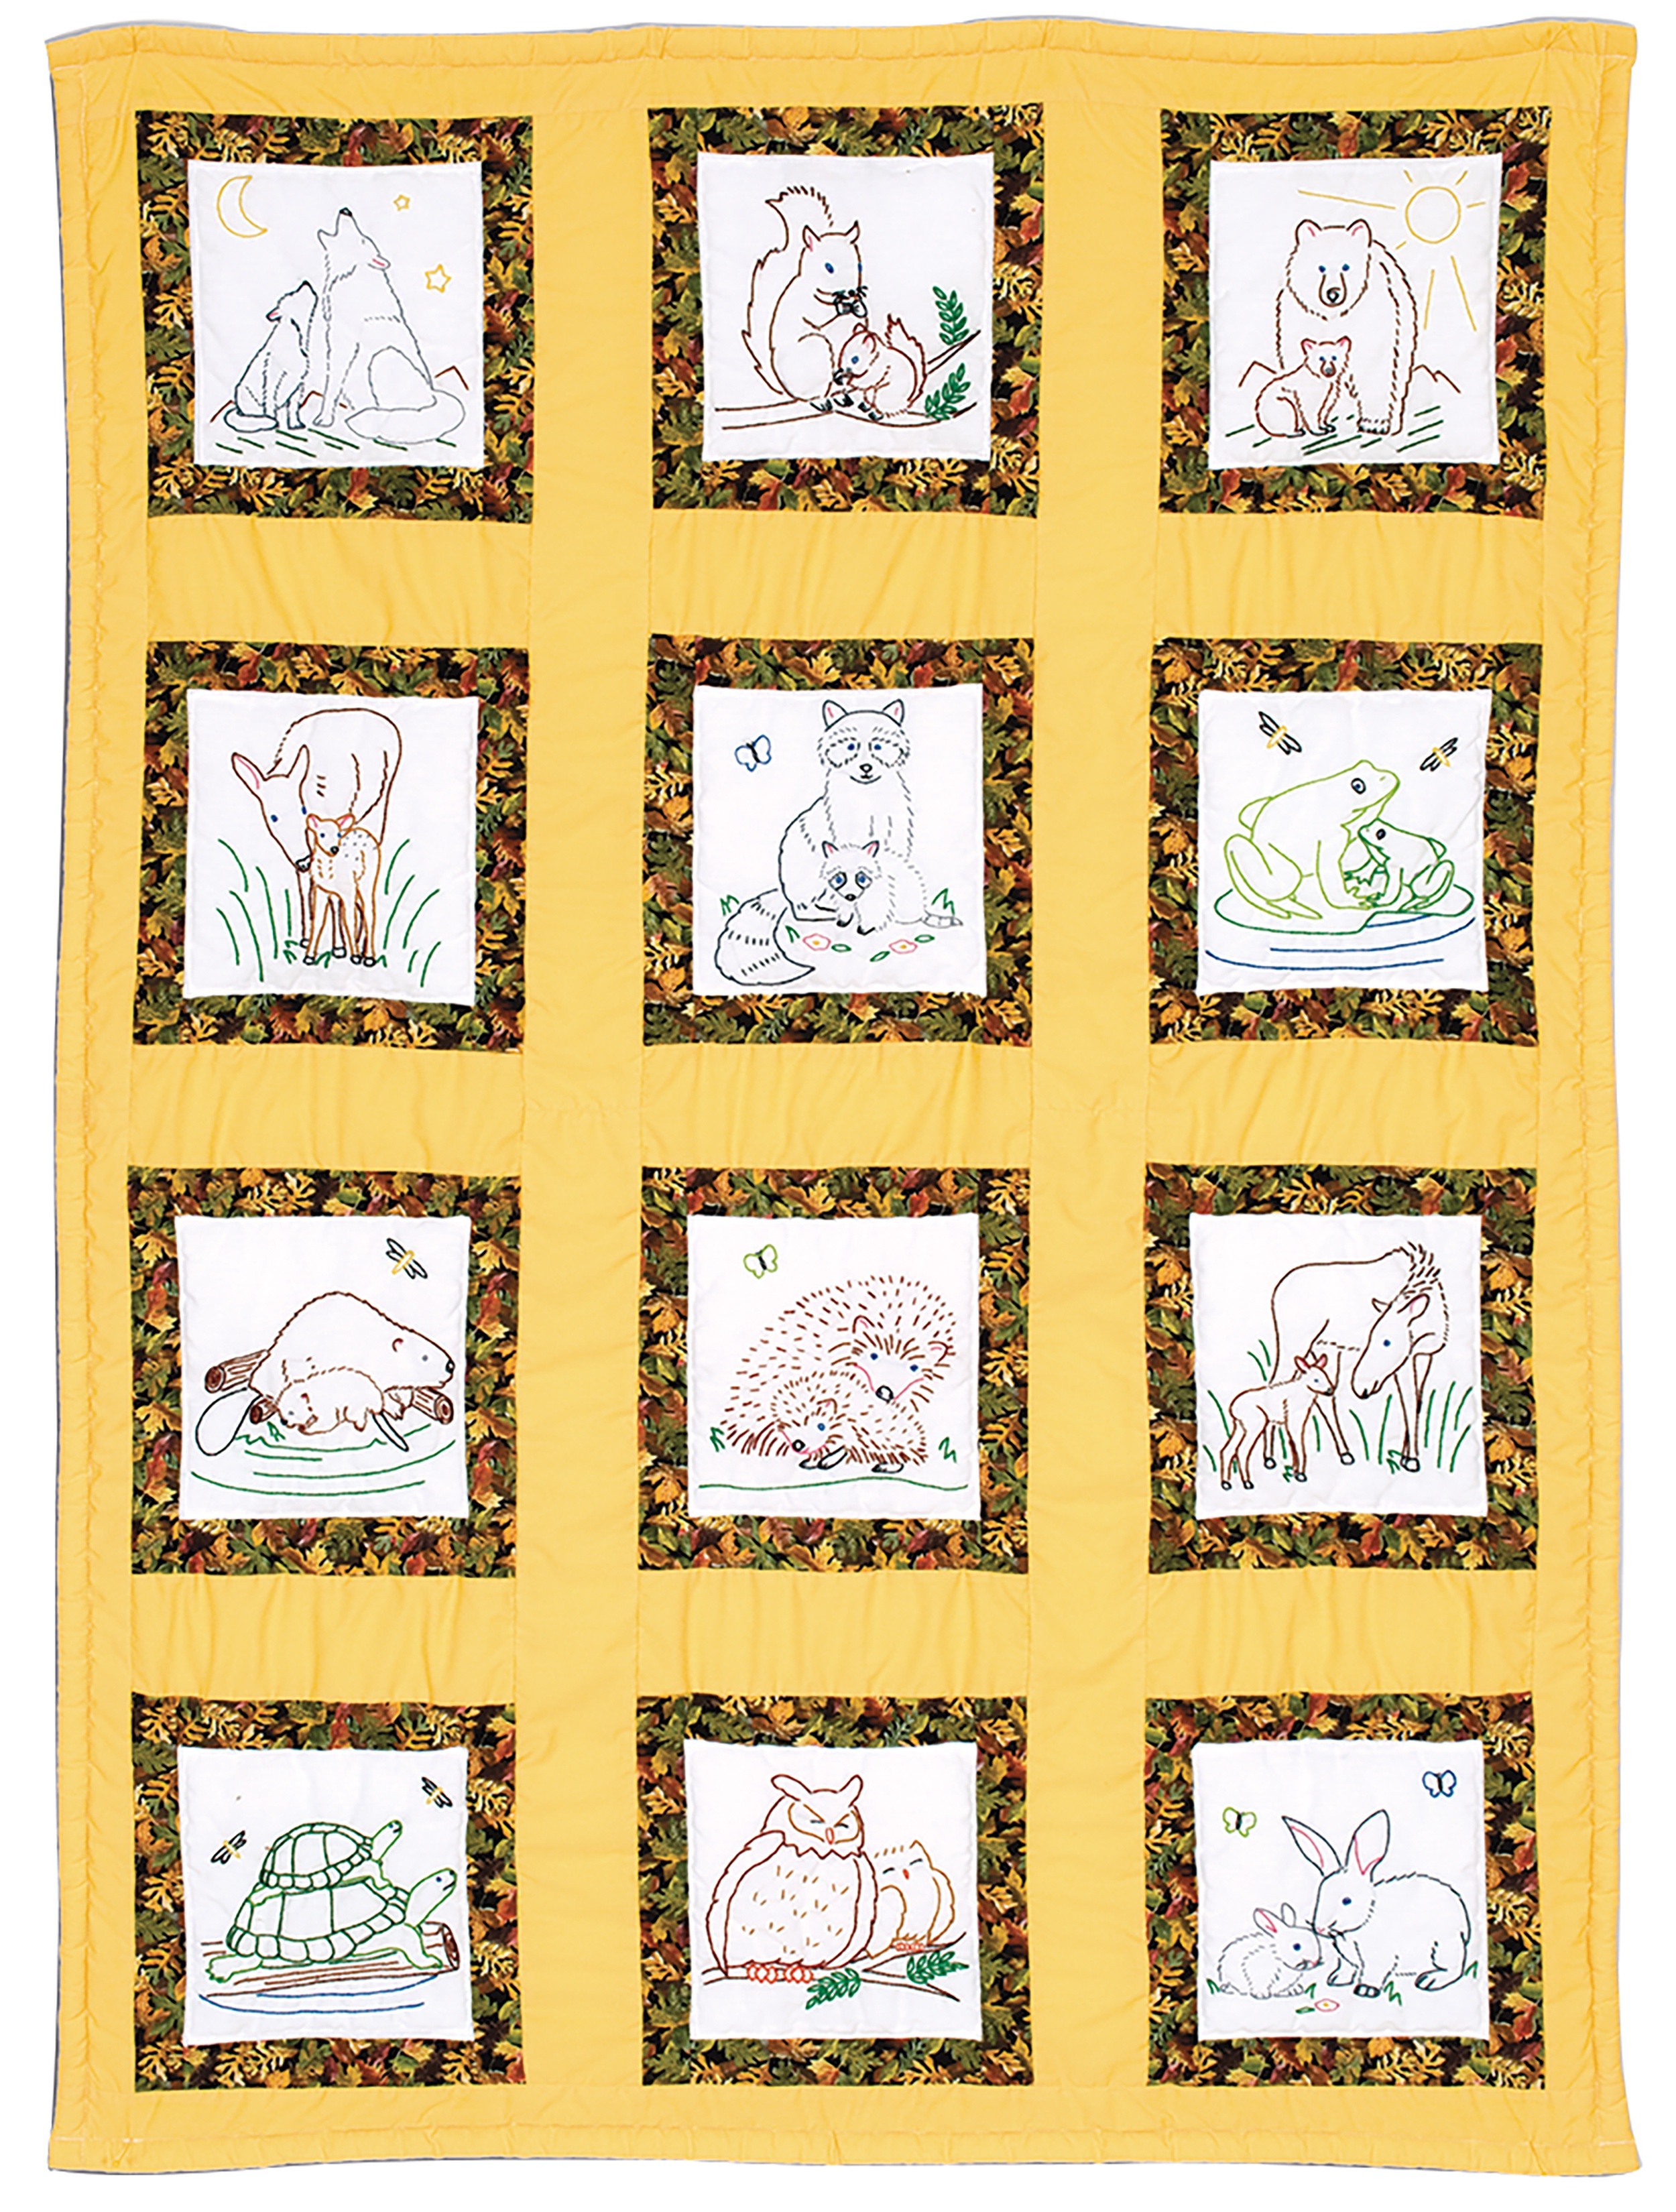 Stamped Embroidery Blocks - Wilderness Animals